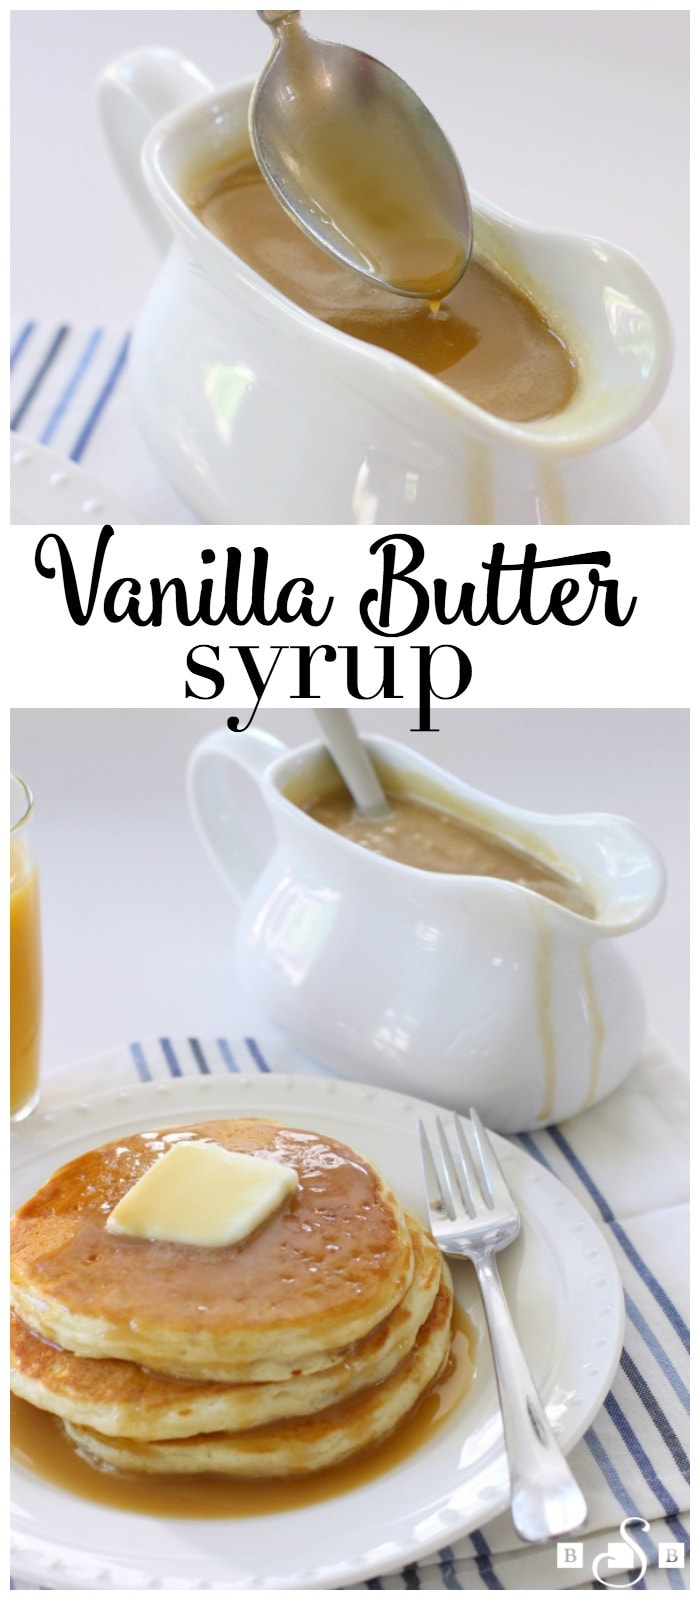 Vanilla Butter Syrup will make you never want to buy store-bought syrup again - this easy homemade syrup tastes incredible on fresh pancakes!